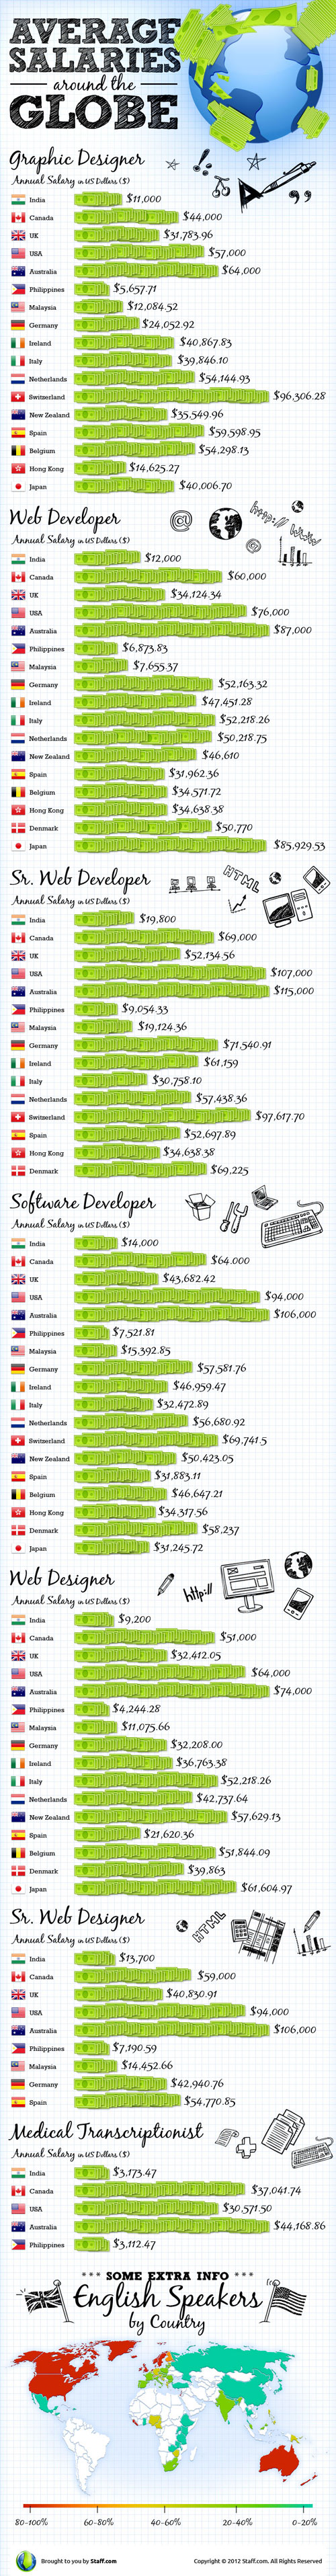 Pinoy developer salaries, the lowest in the world?